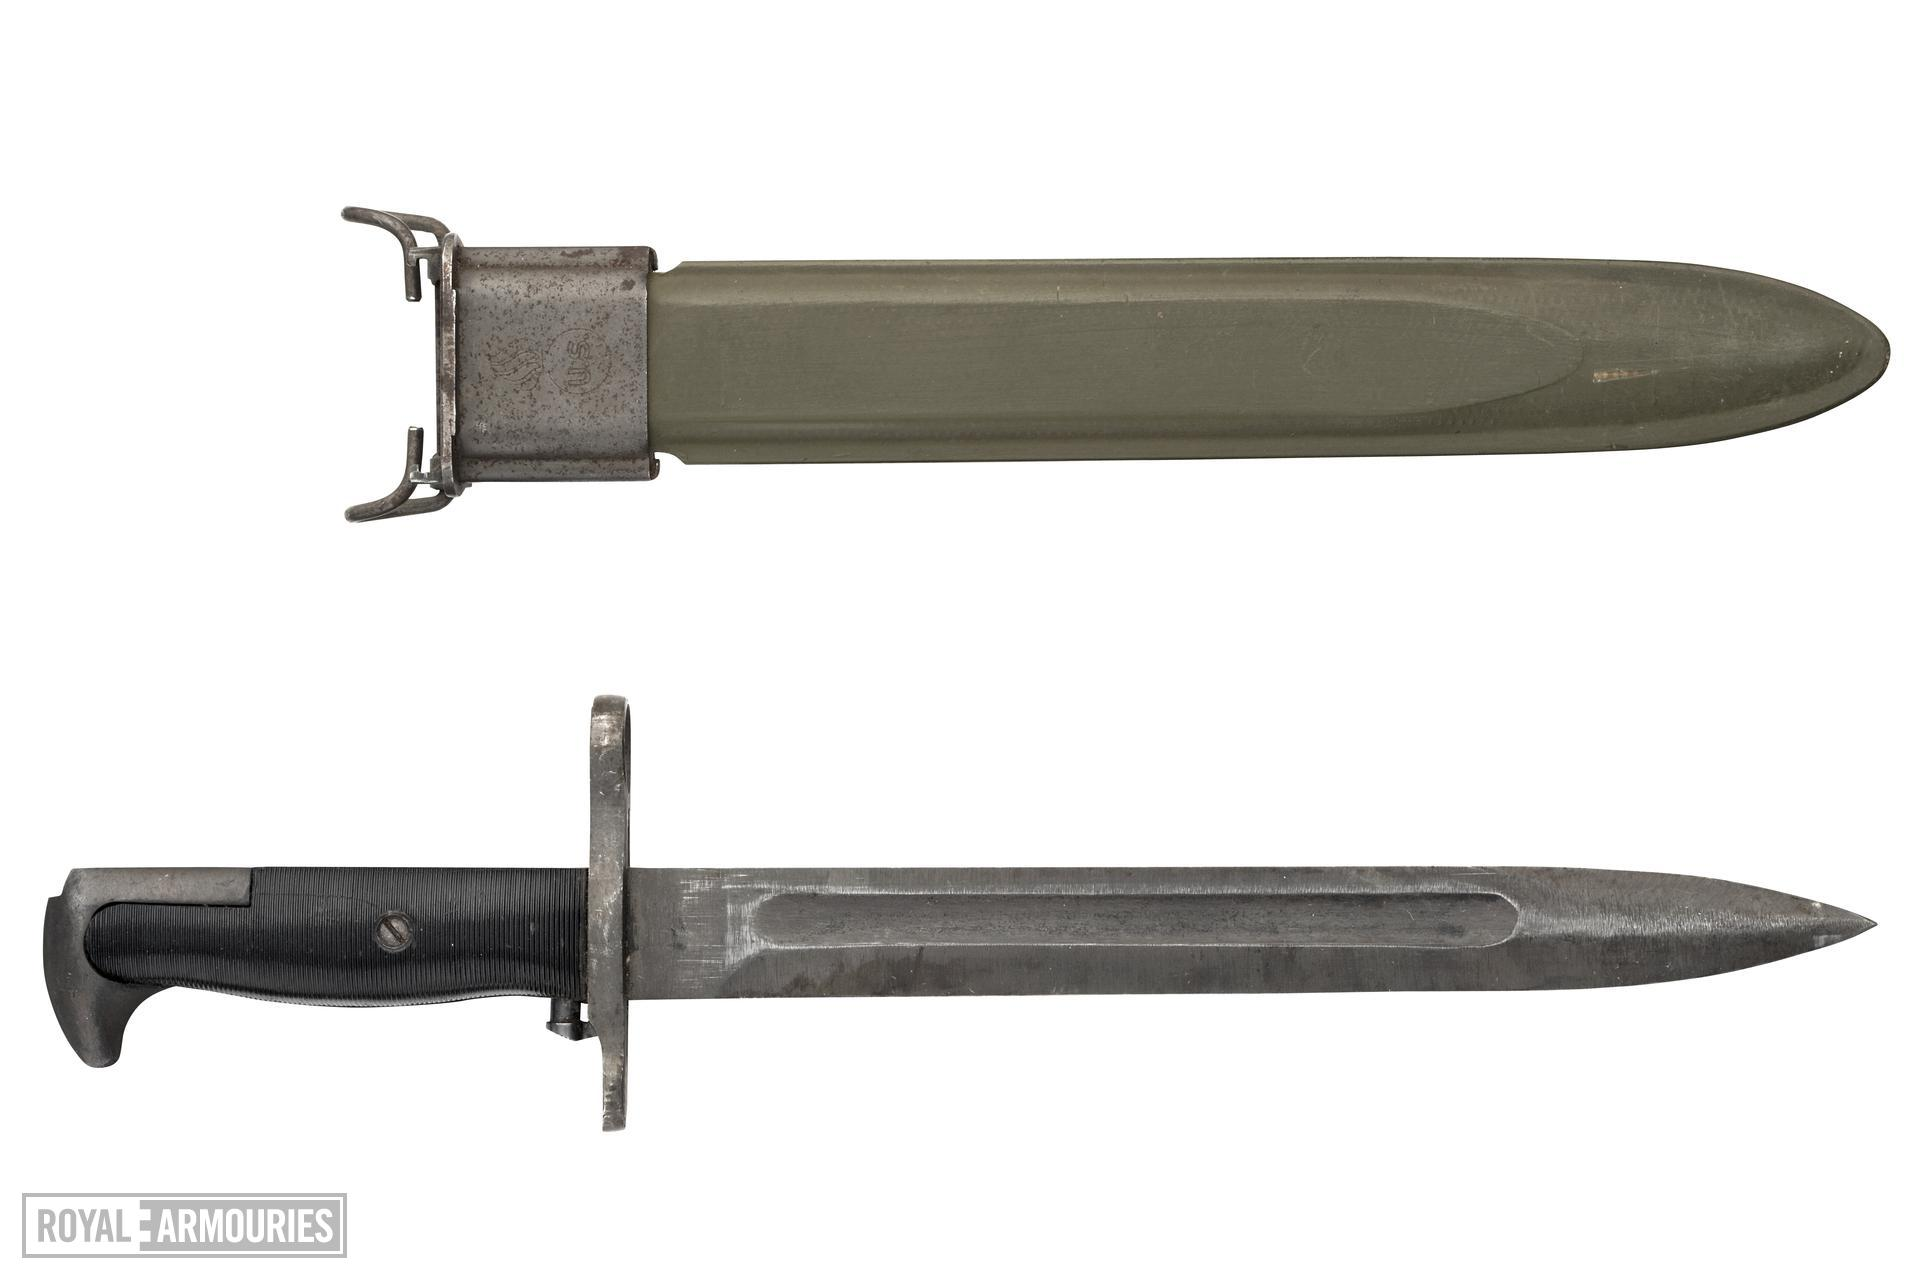 Knife bayonet - M1